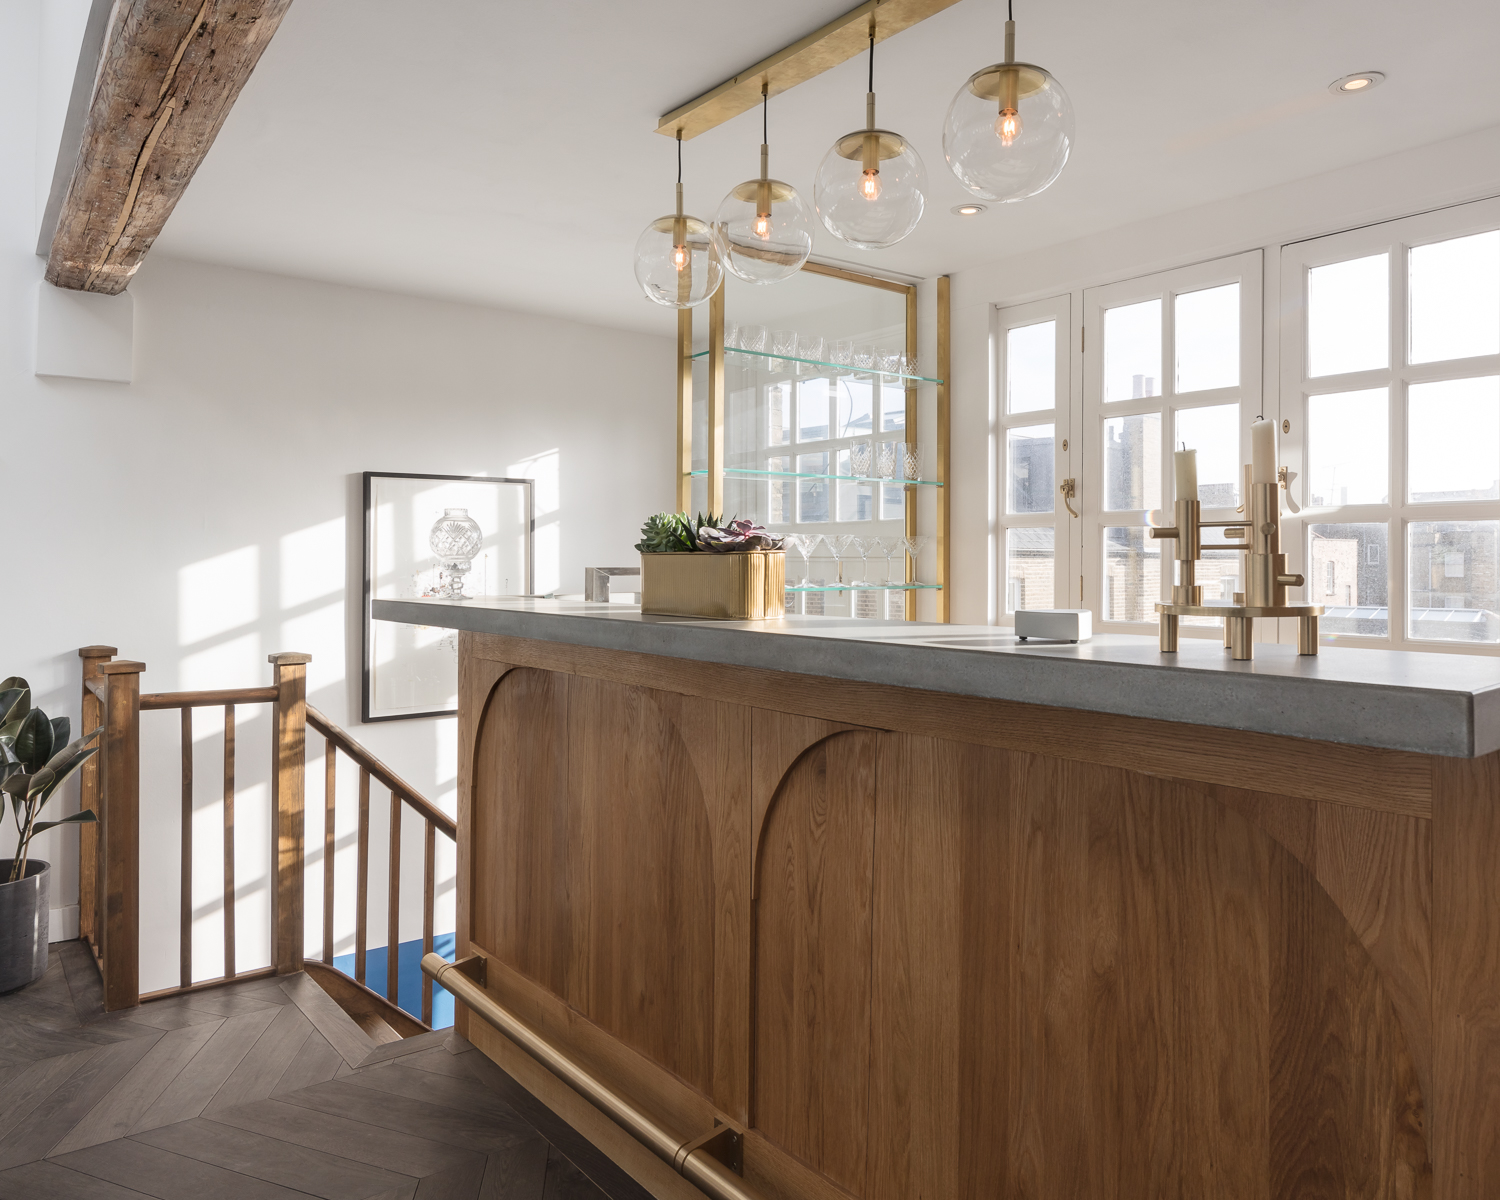 Our grey bespoke concrete worktop is beautifully offset by stunning brass work in this tough luxe interior in central London